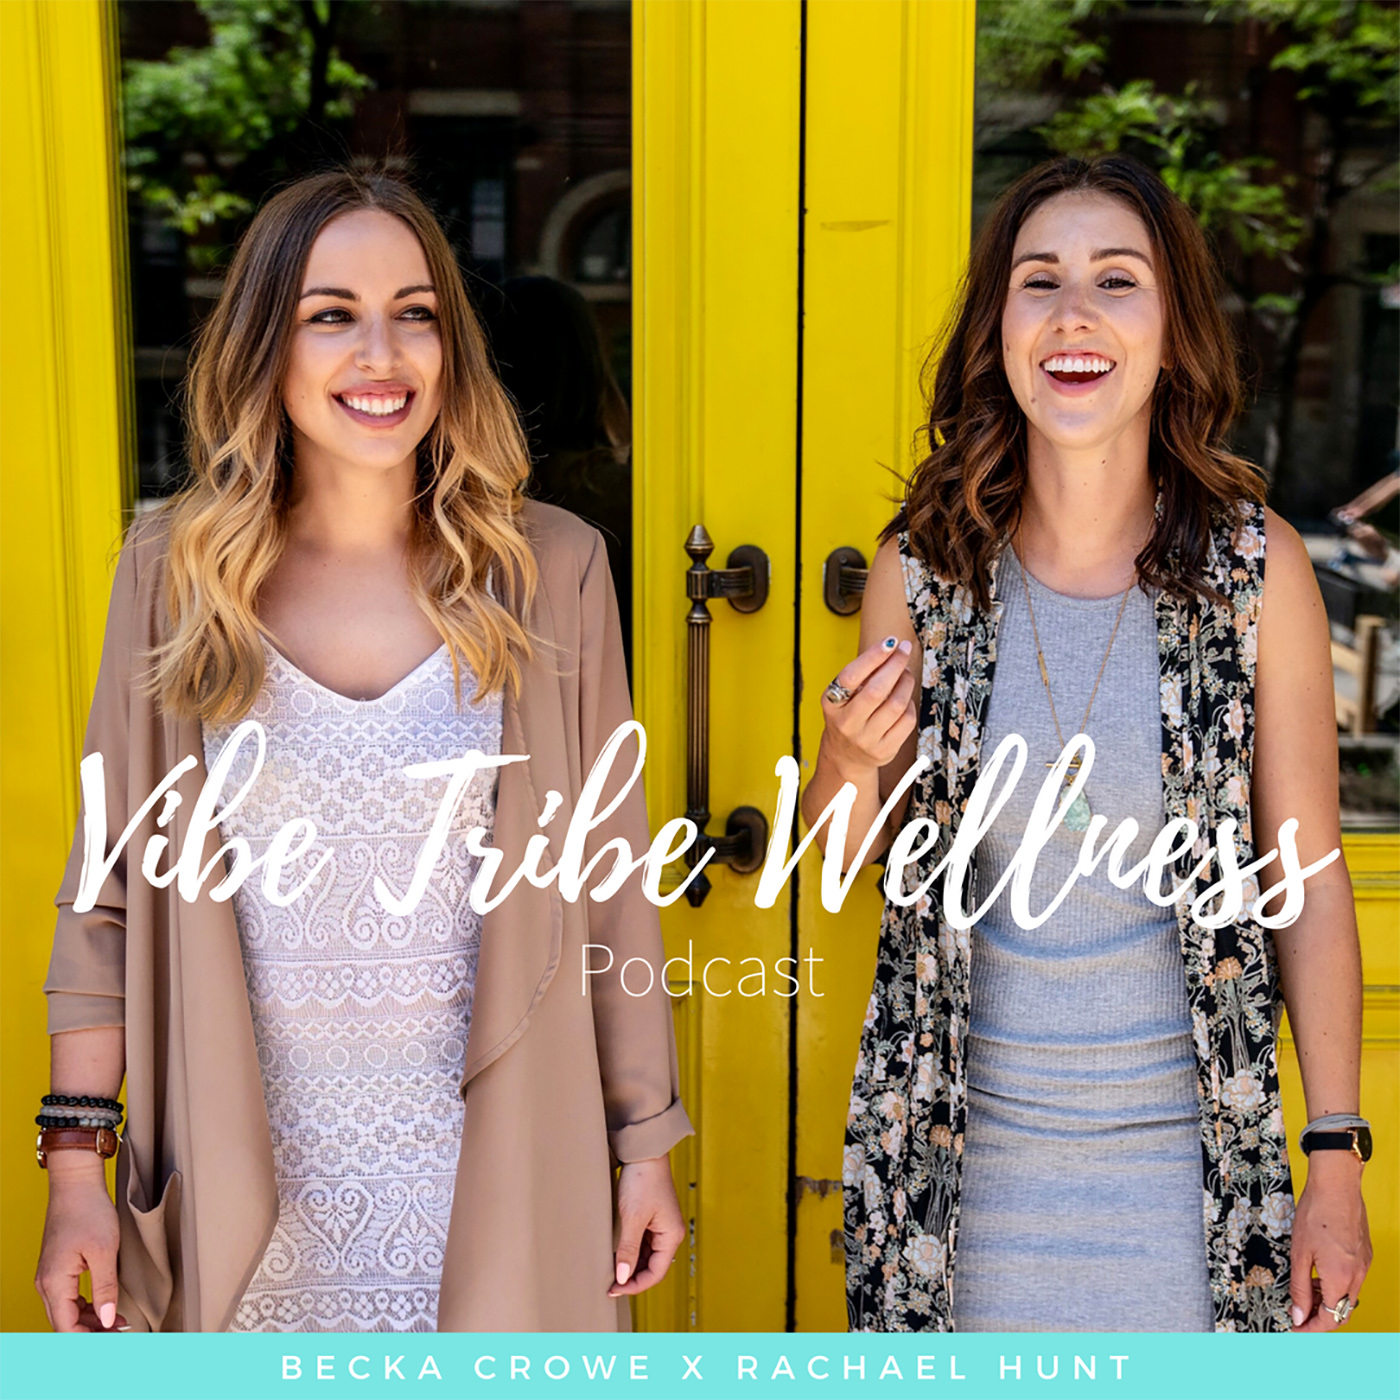 Vibe Tribe Wellness on Apple Podcasts